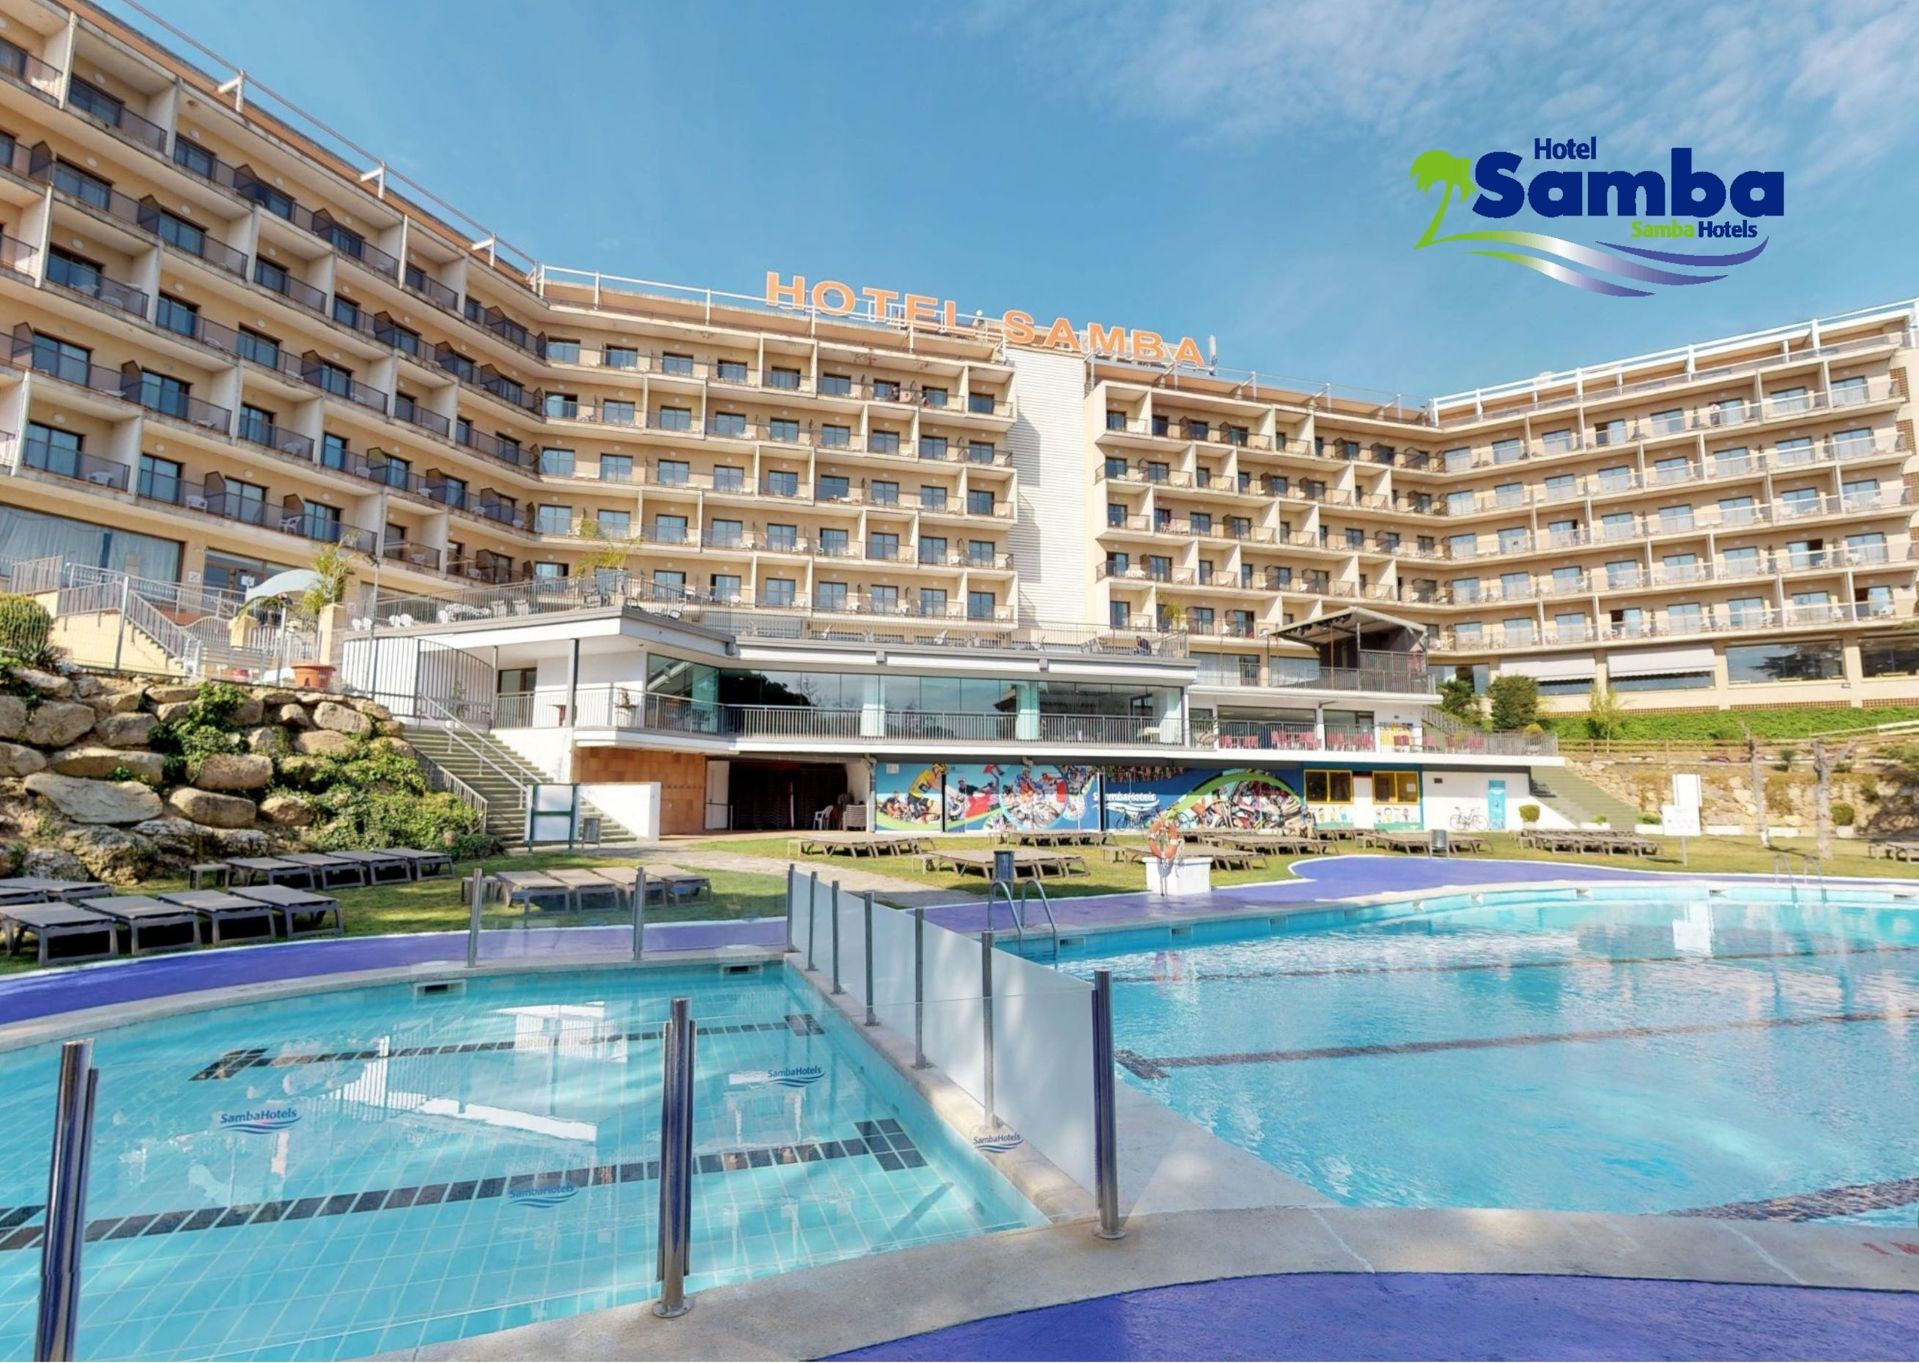 Hotels with Early Booking in Lloret de Mar